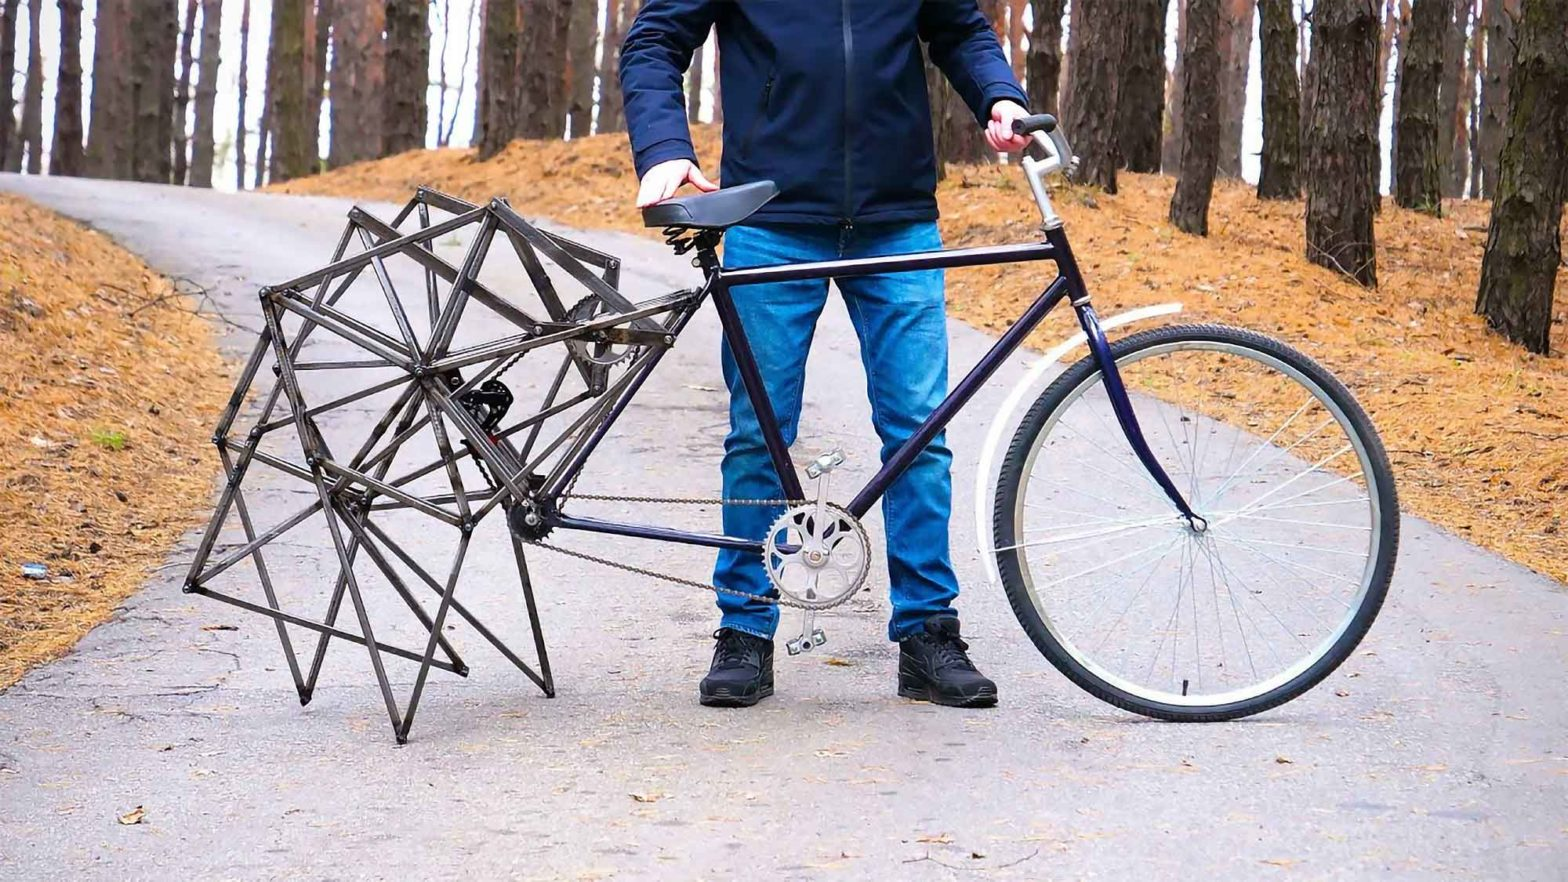 Bicycle with Mechanical Walking Legs by The Q